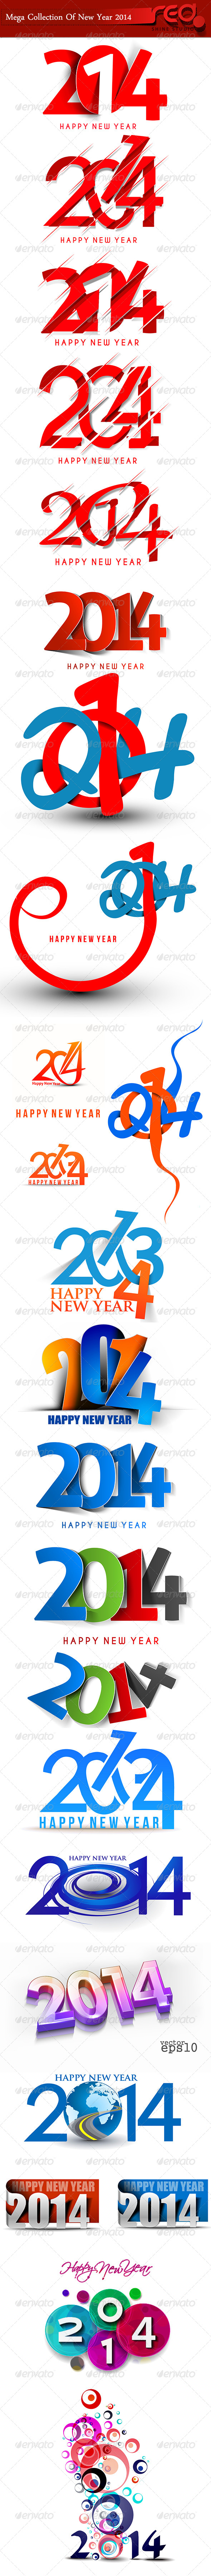 GraphicRiver Happy New Year 2014 6222833